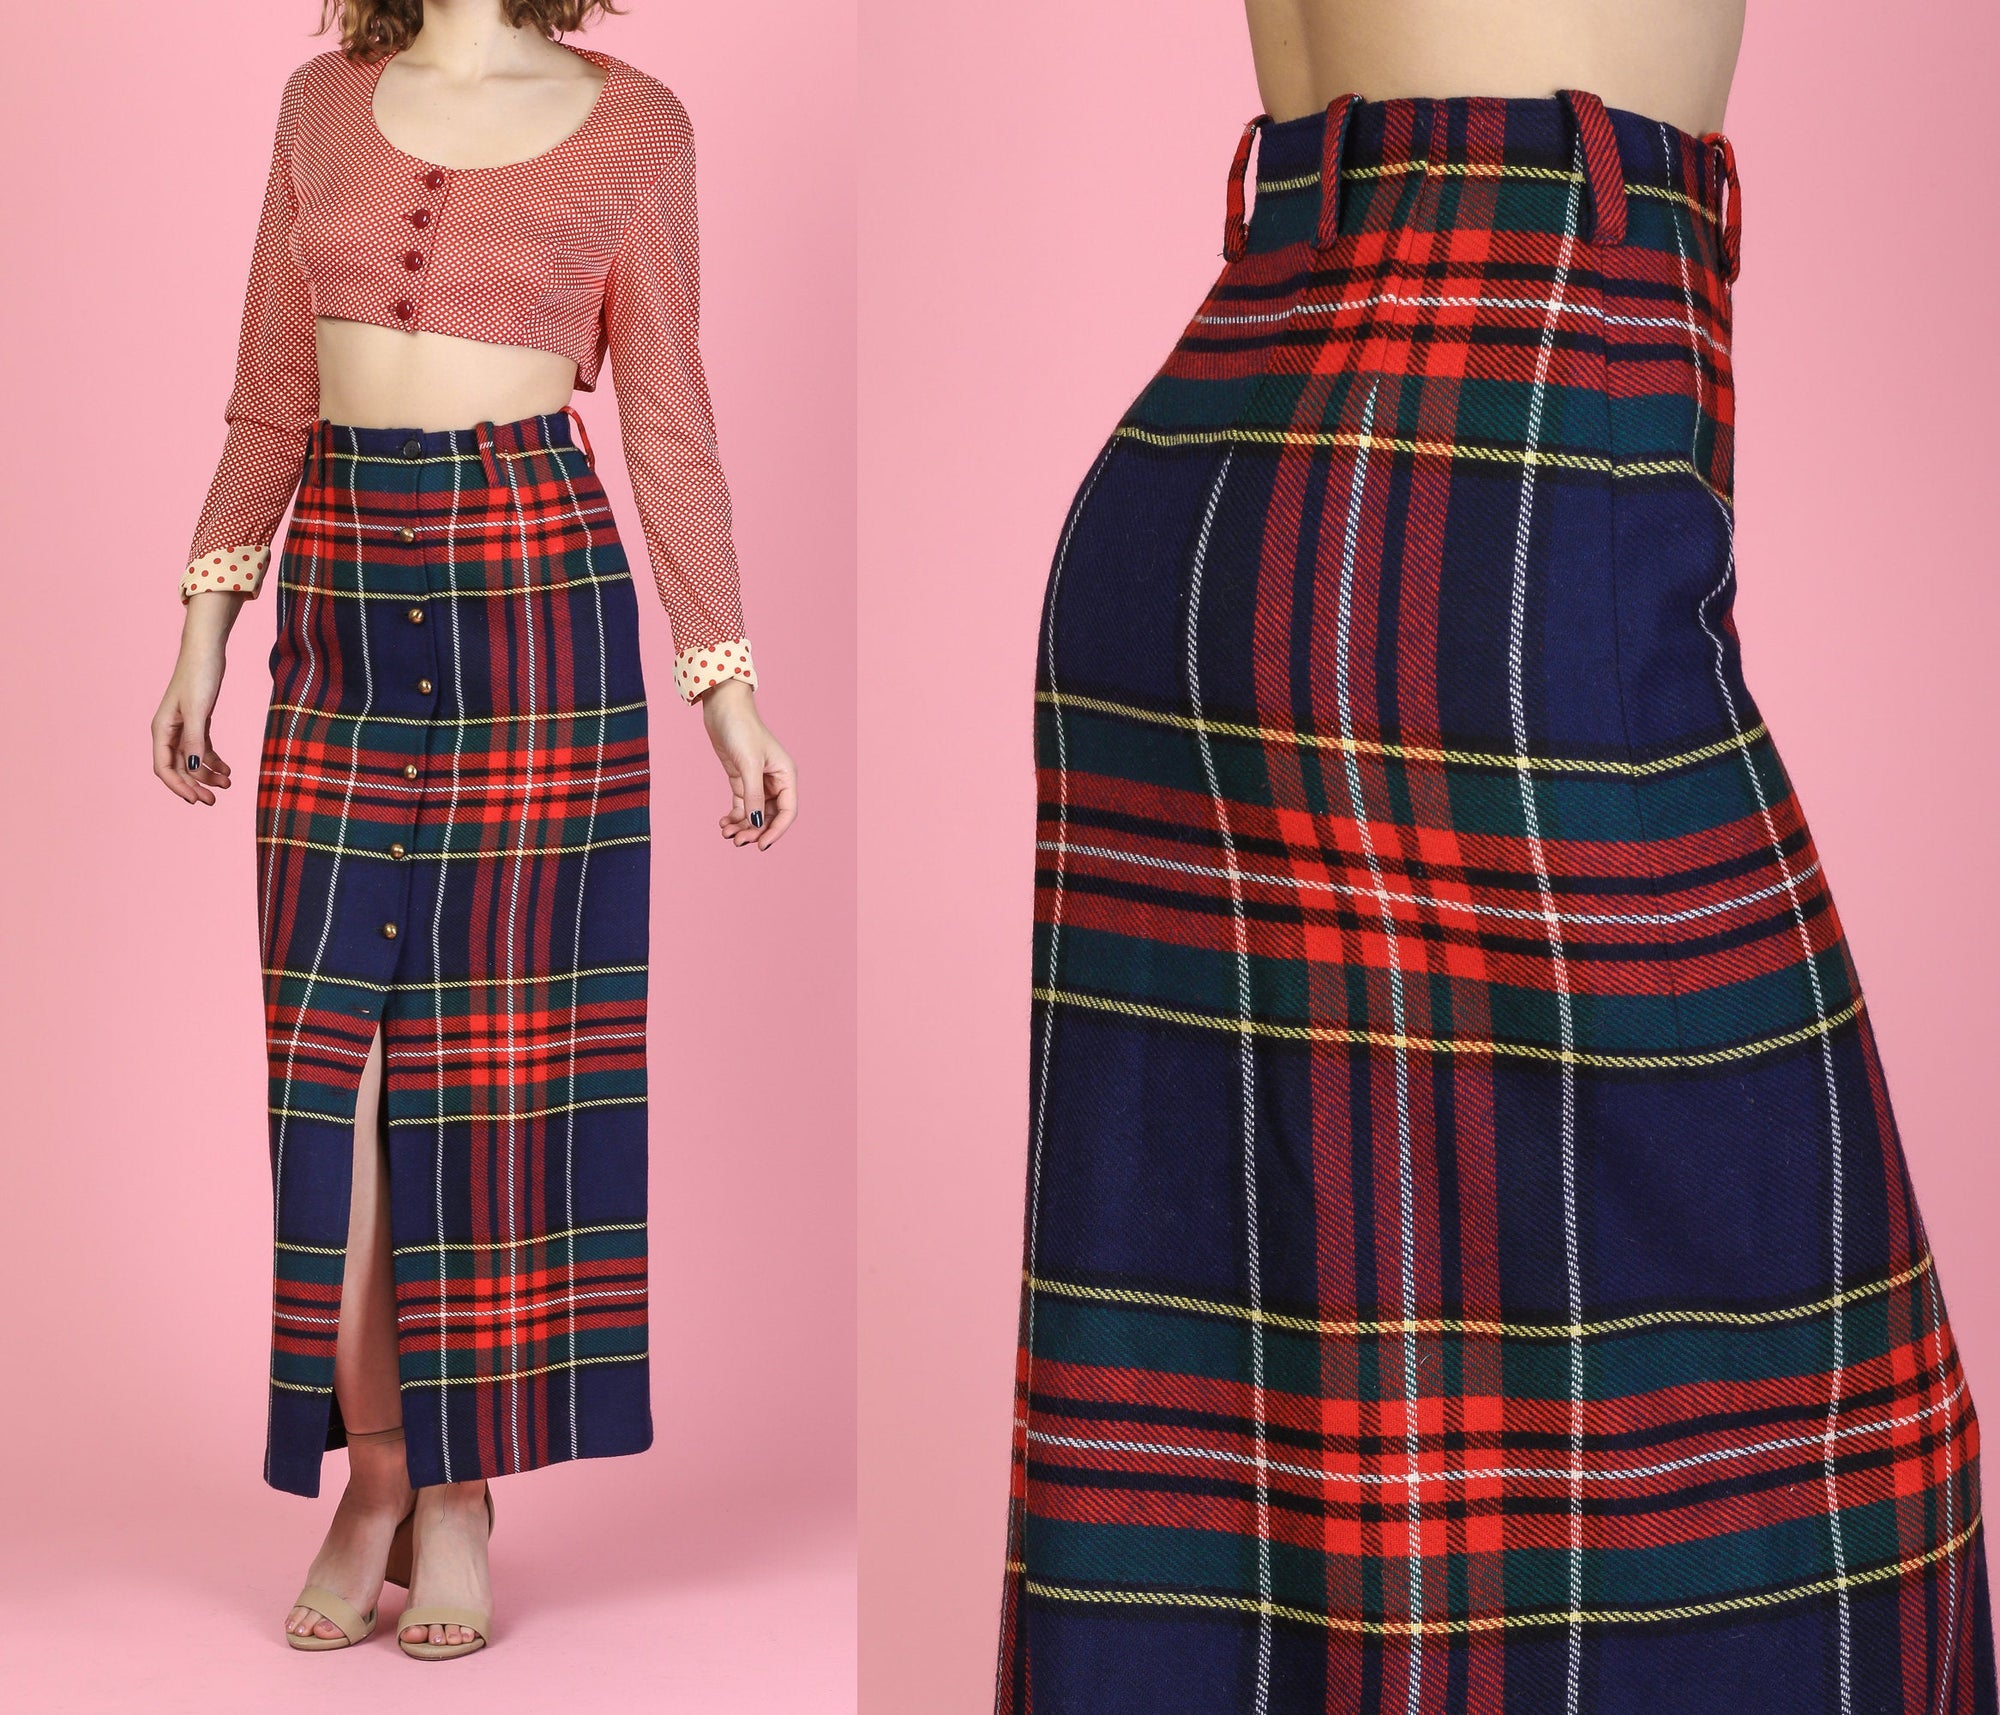 70s Plaid Button Up Skirt - XS to Small